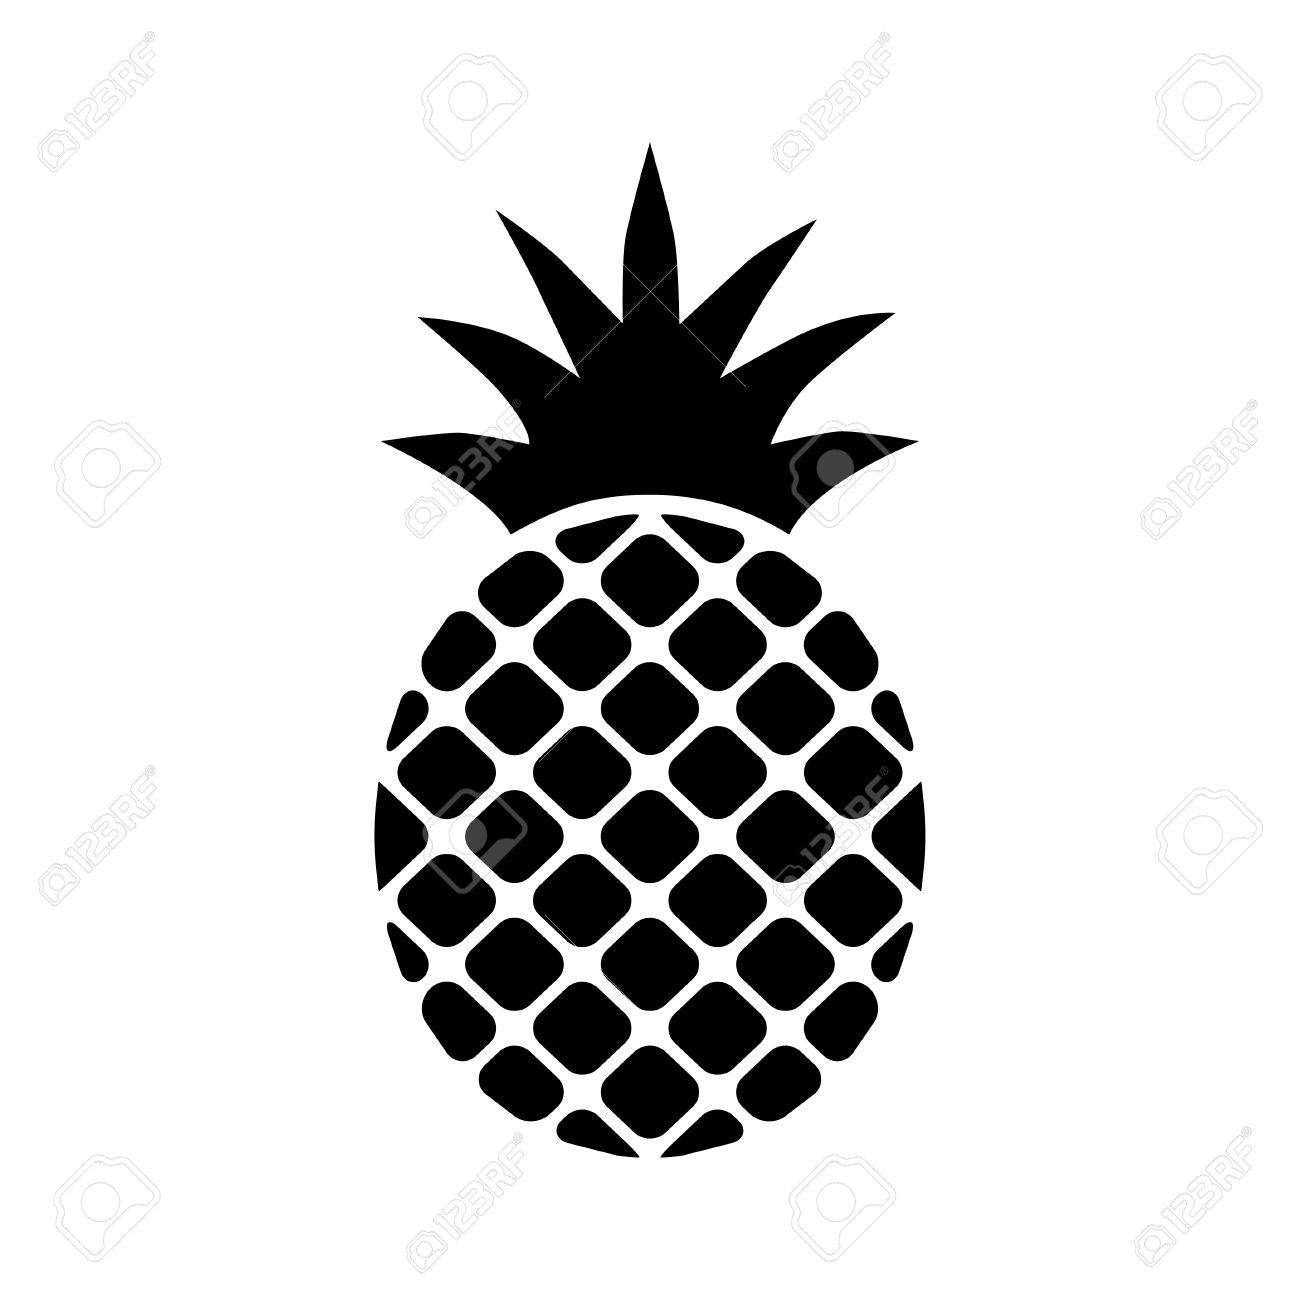 Pineapple Ananas Icon Black On A White Background. Royalty Free ... for Clipart Pineapple Black And White  570bof